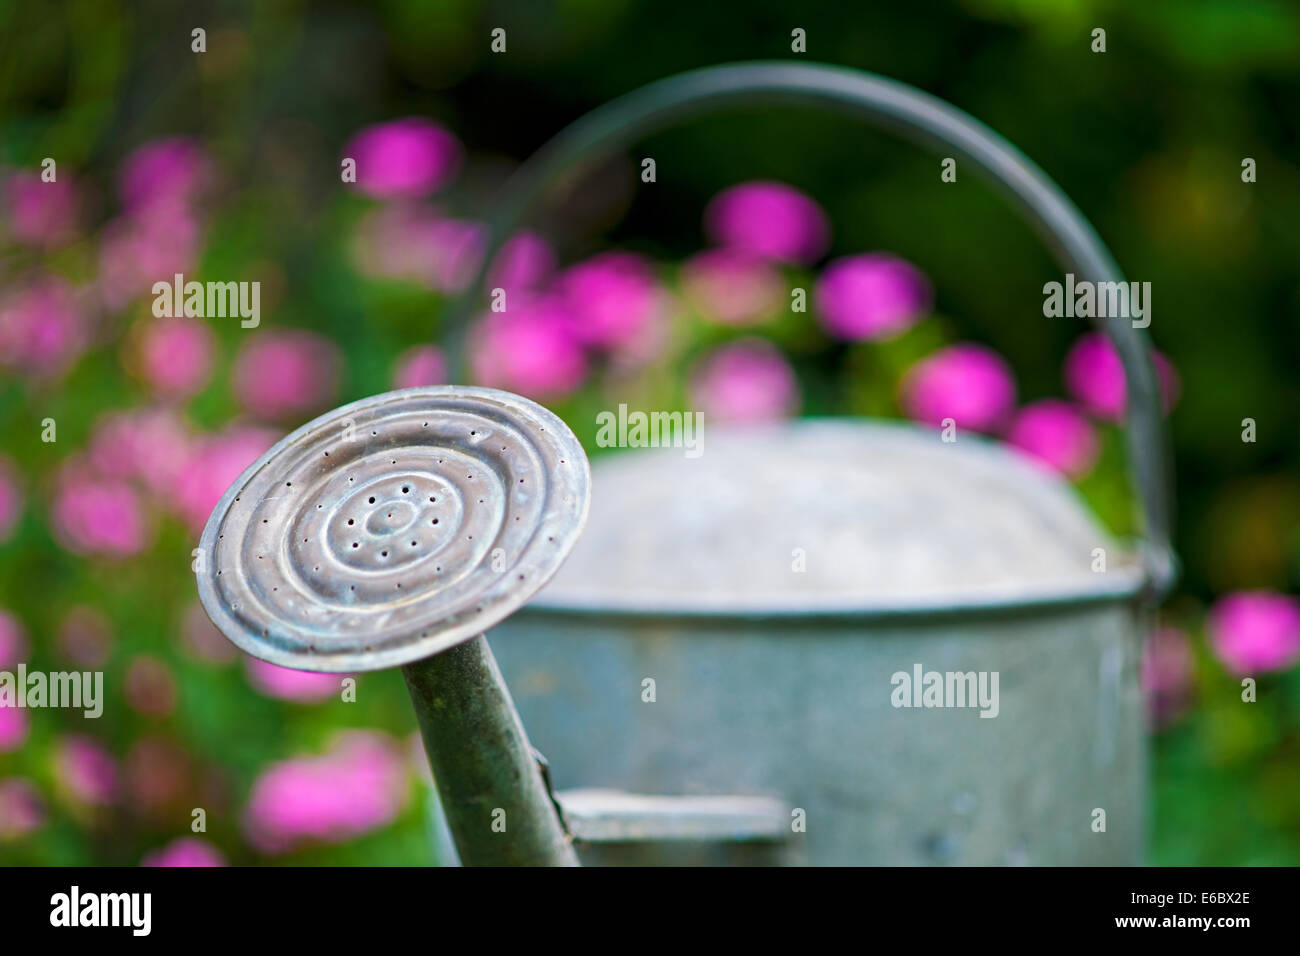 Close up of a watering can rose in a garden - Stock Image